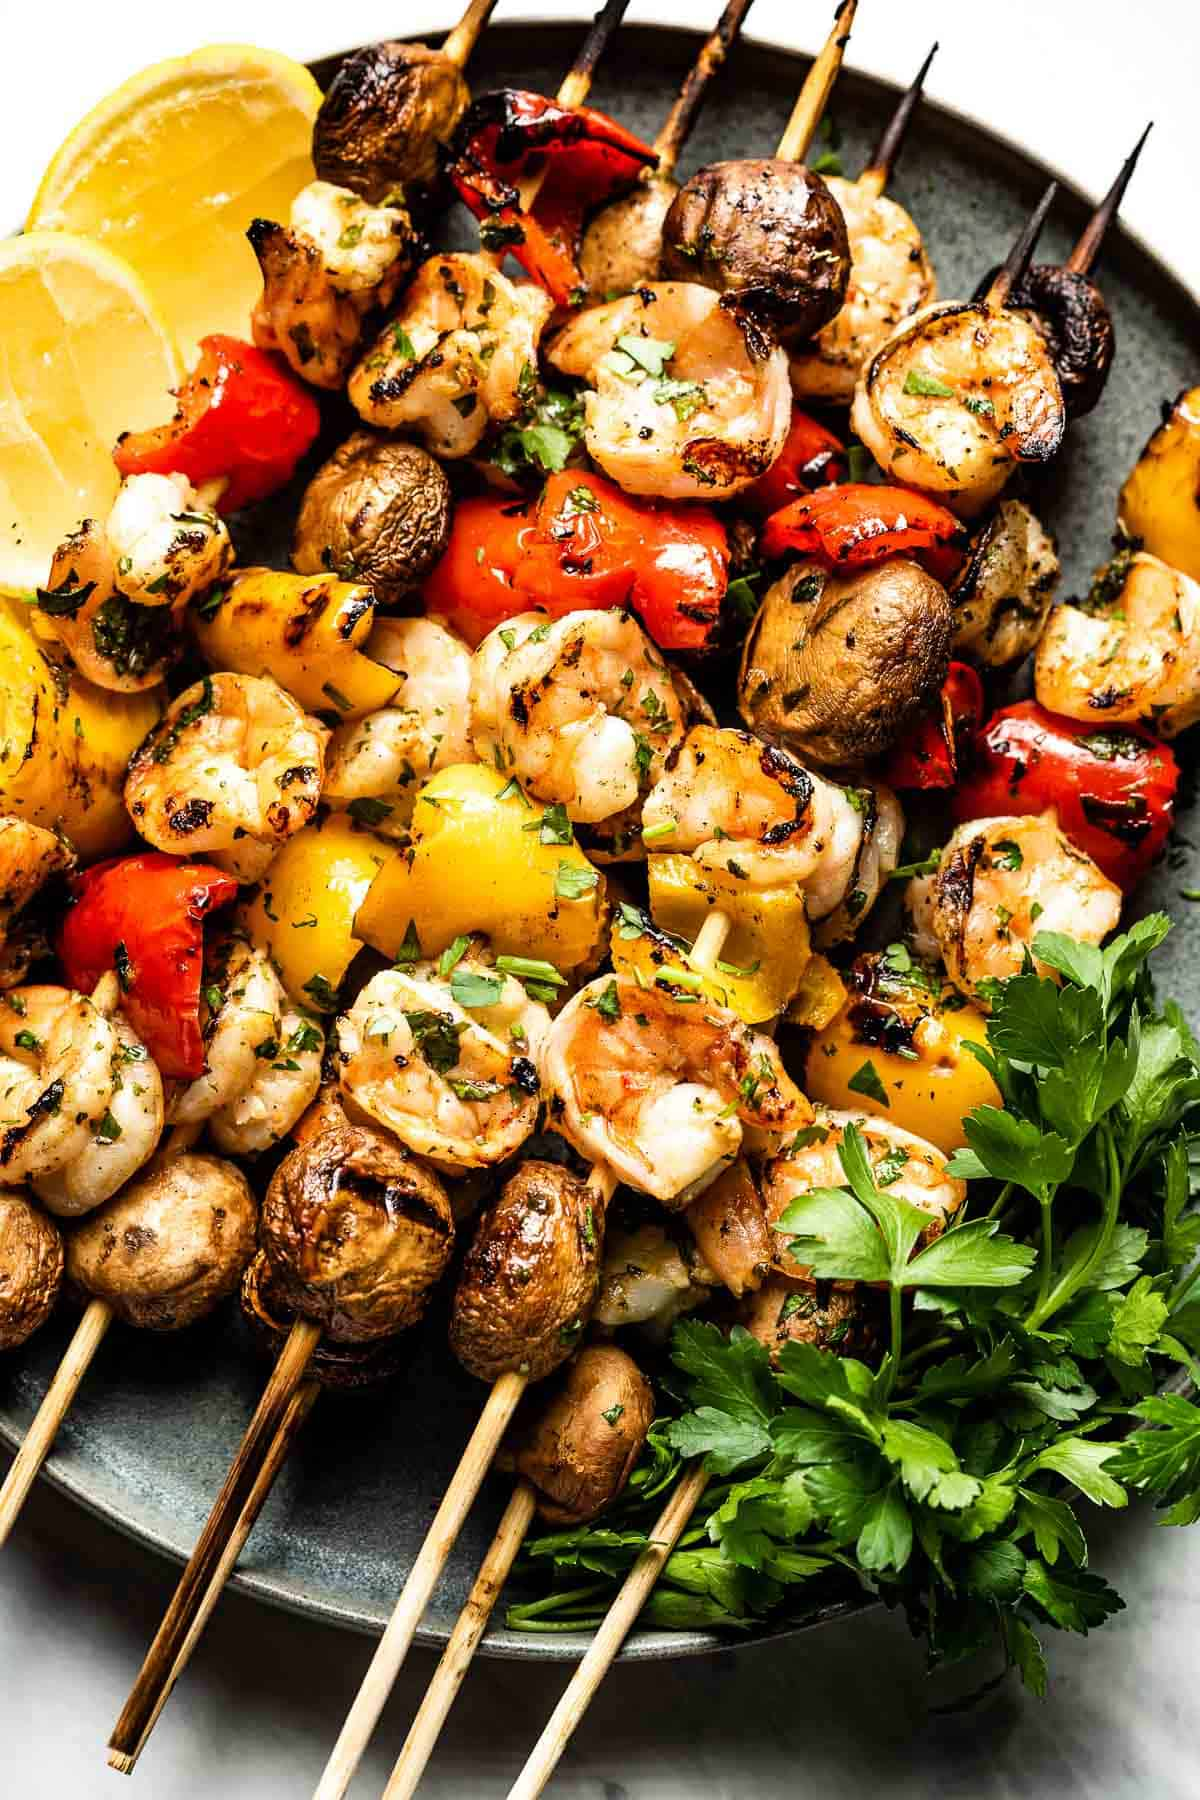 Grilled Shrimp Skewers with vegetables on a plate.